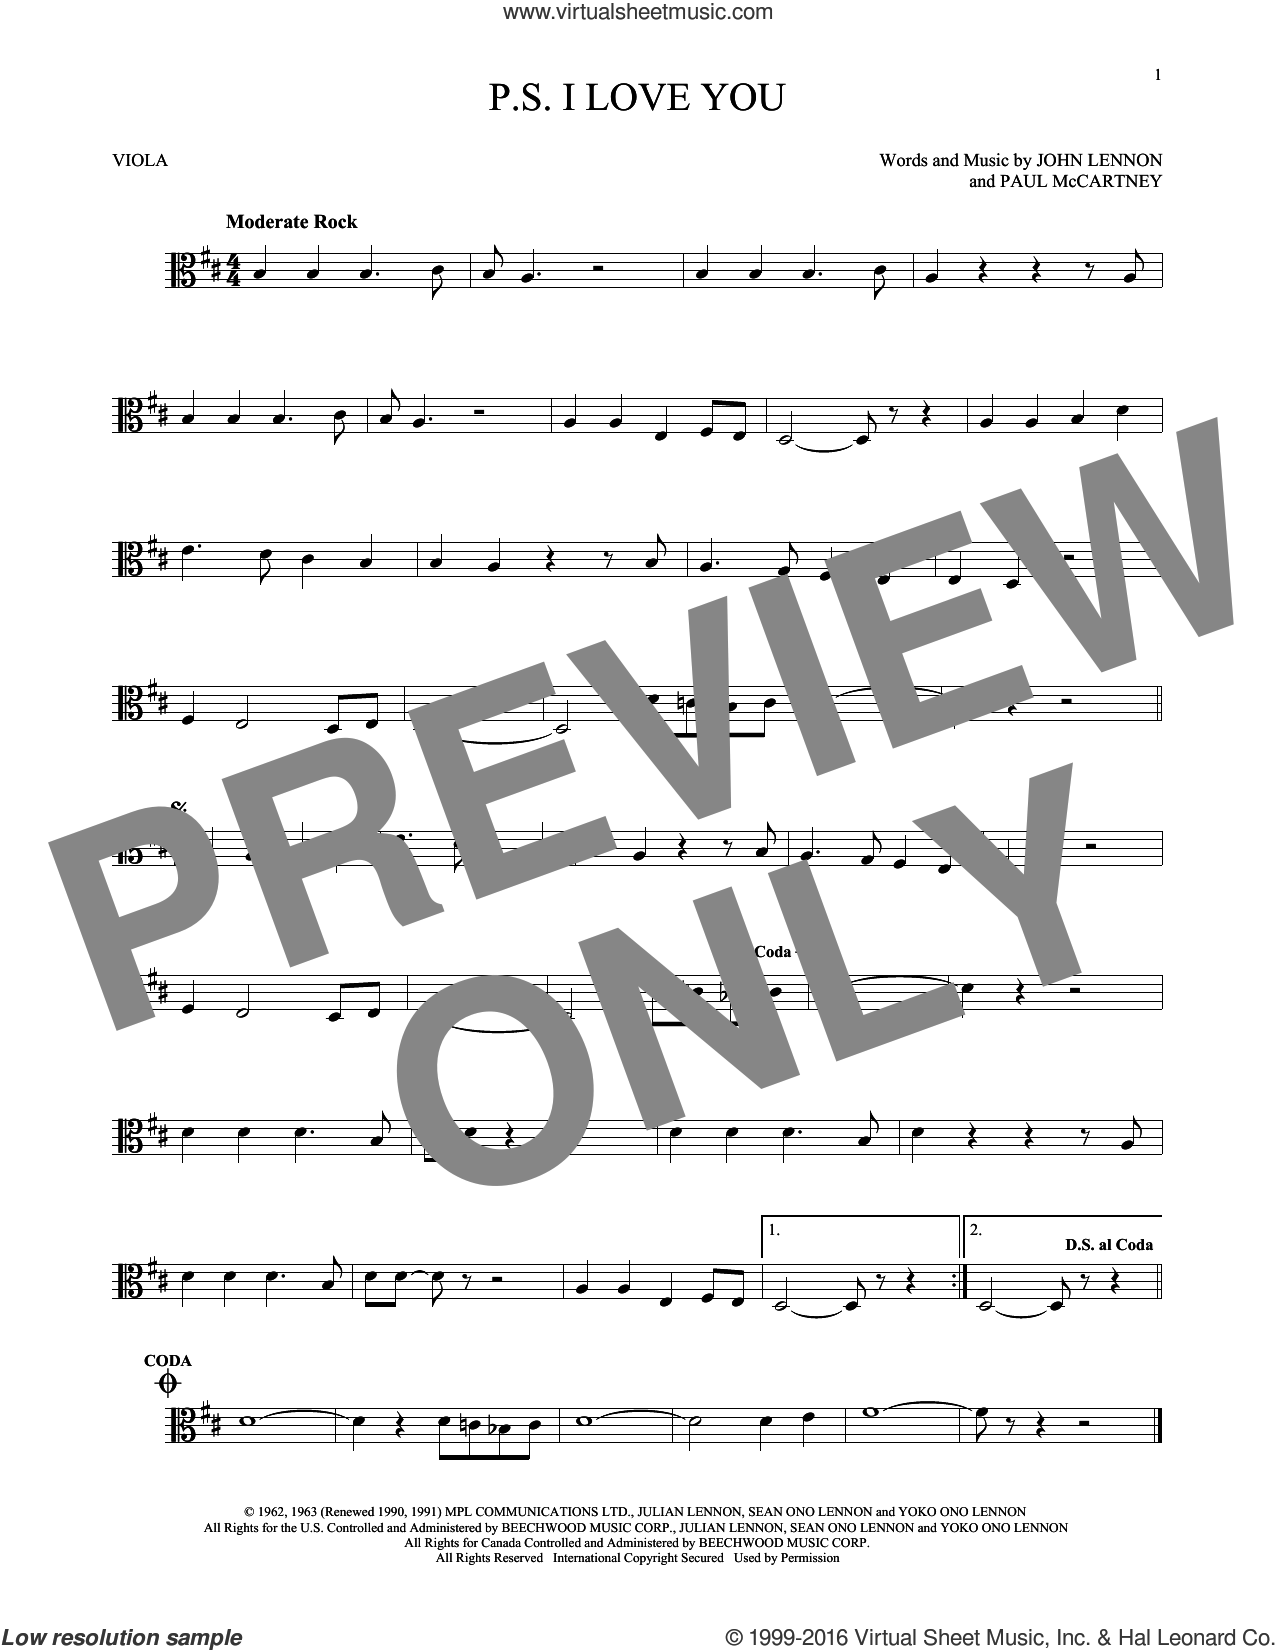 P.S. I Love You sheet music for viola solo by The Beatles, John Lennon and Paul McCartney, intermediate skill level